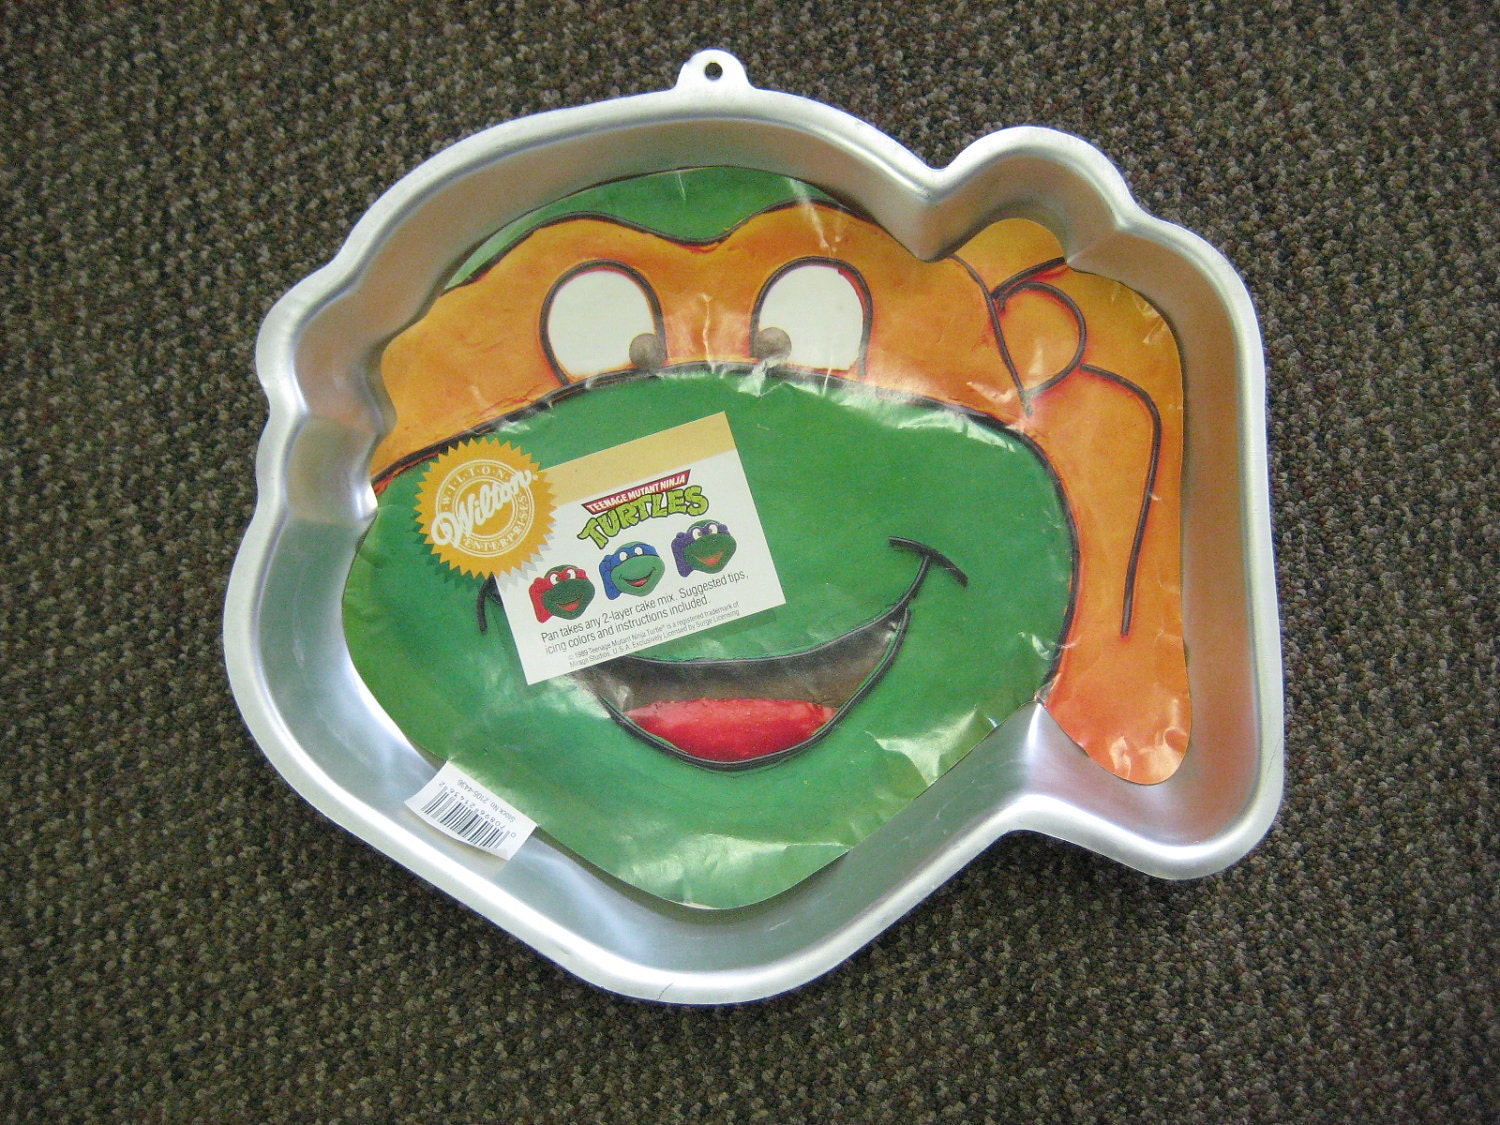 teenage mutant ninja turtle cake pans